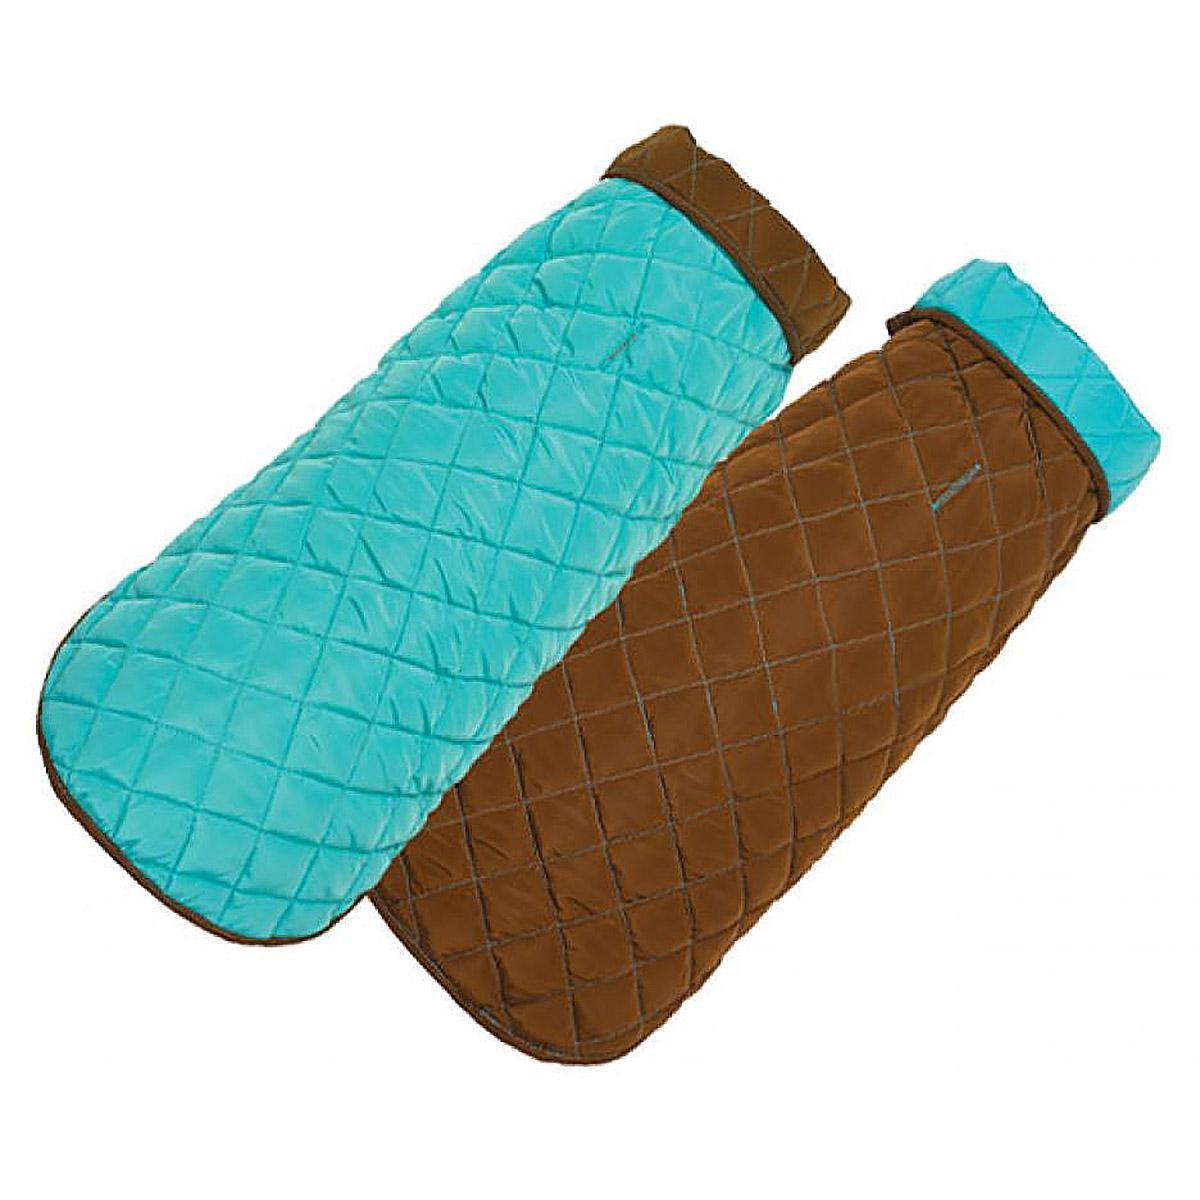 Diamond Quilted Reversible Dog Coat by Up Country - Aqua and Brown